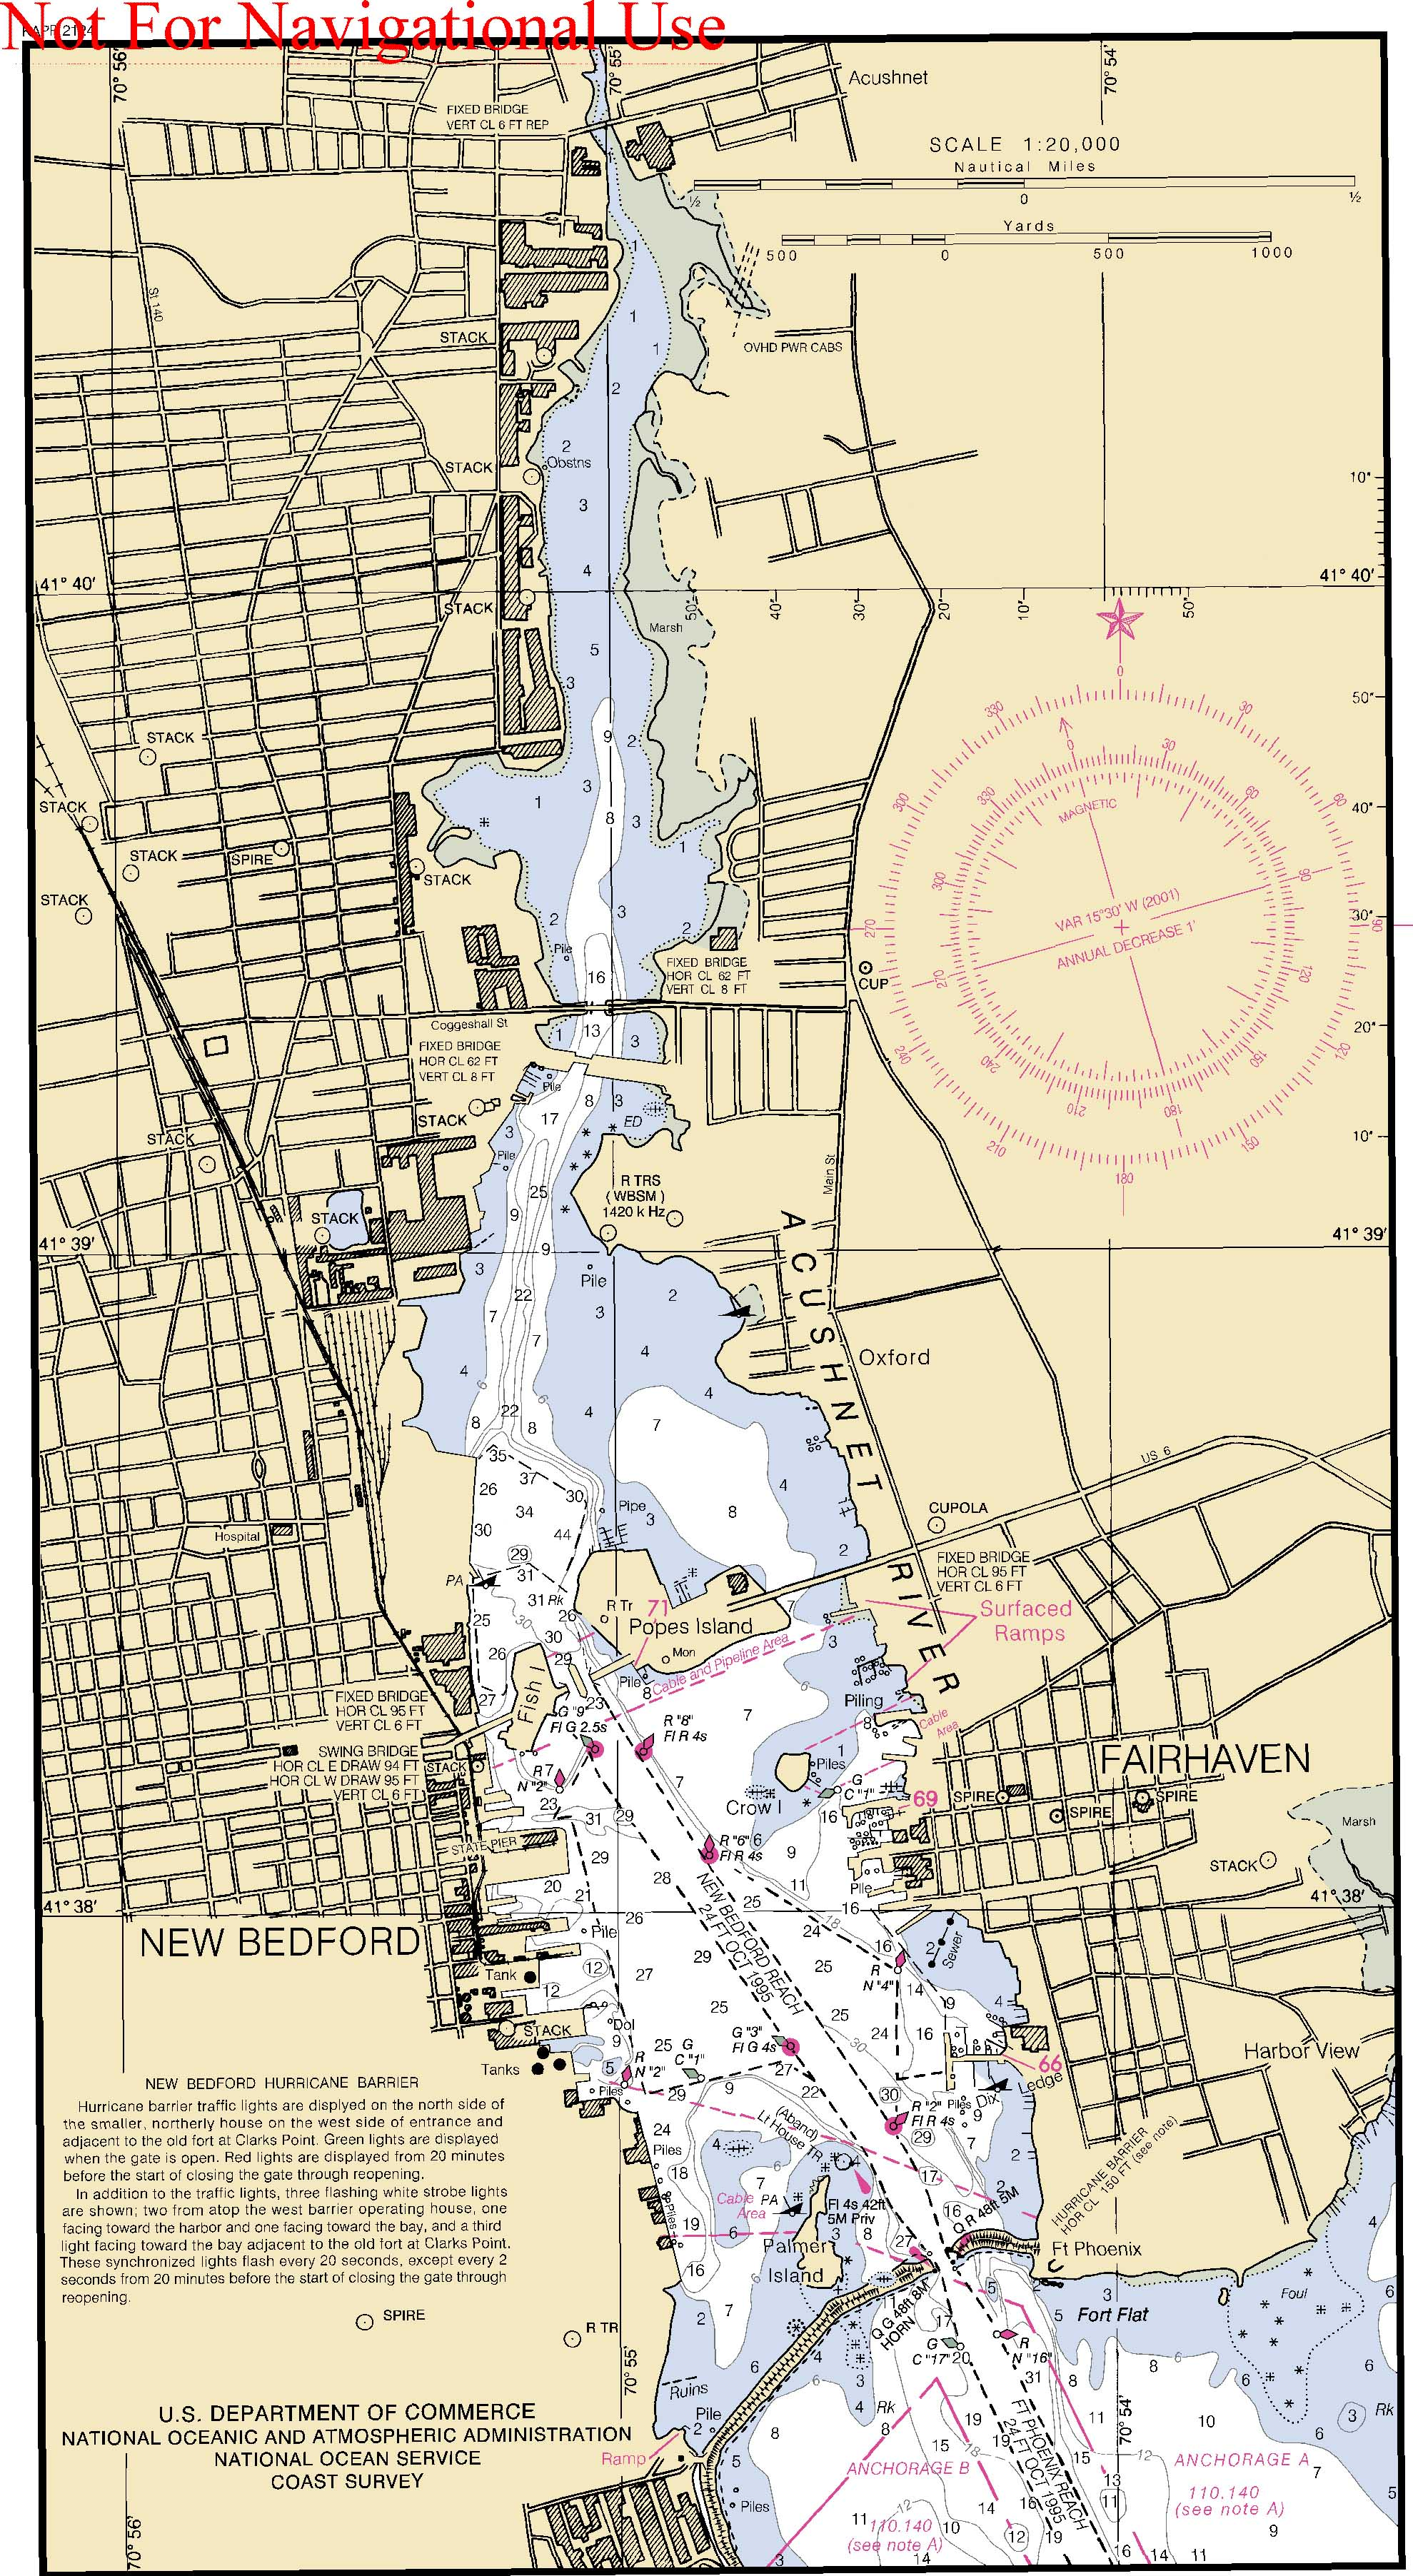 Nautical charts buzzards bay national estuary program historical nautical charts of buzzards bay geenschuldenfo Gallery